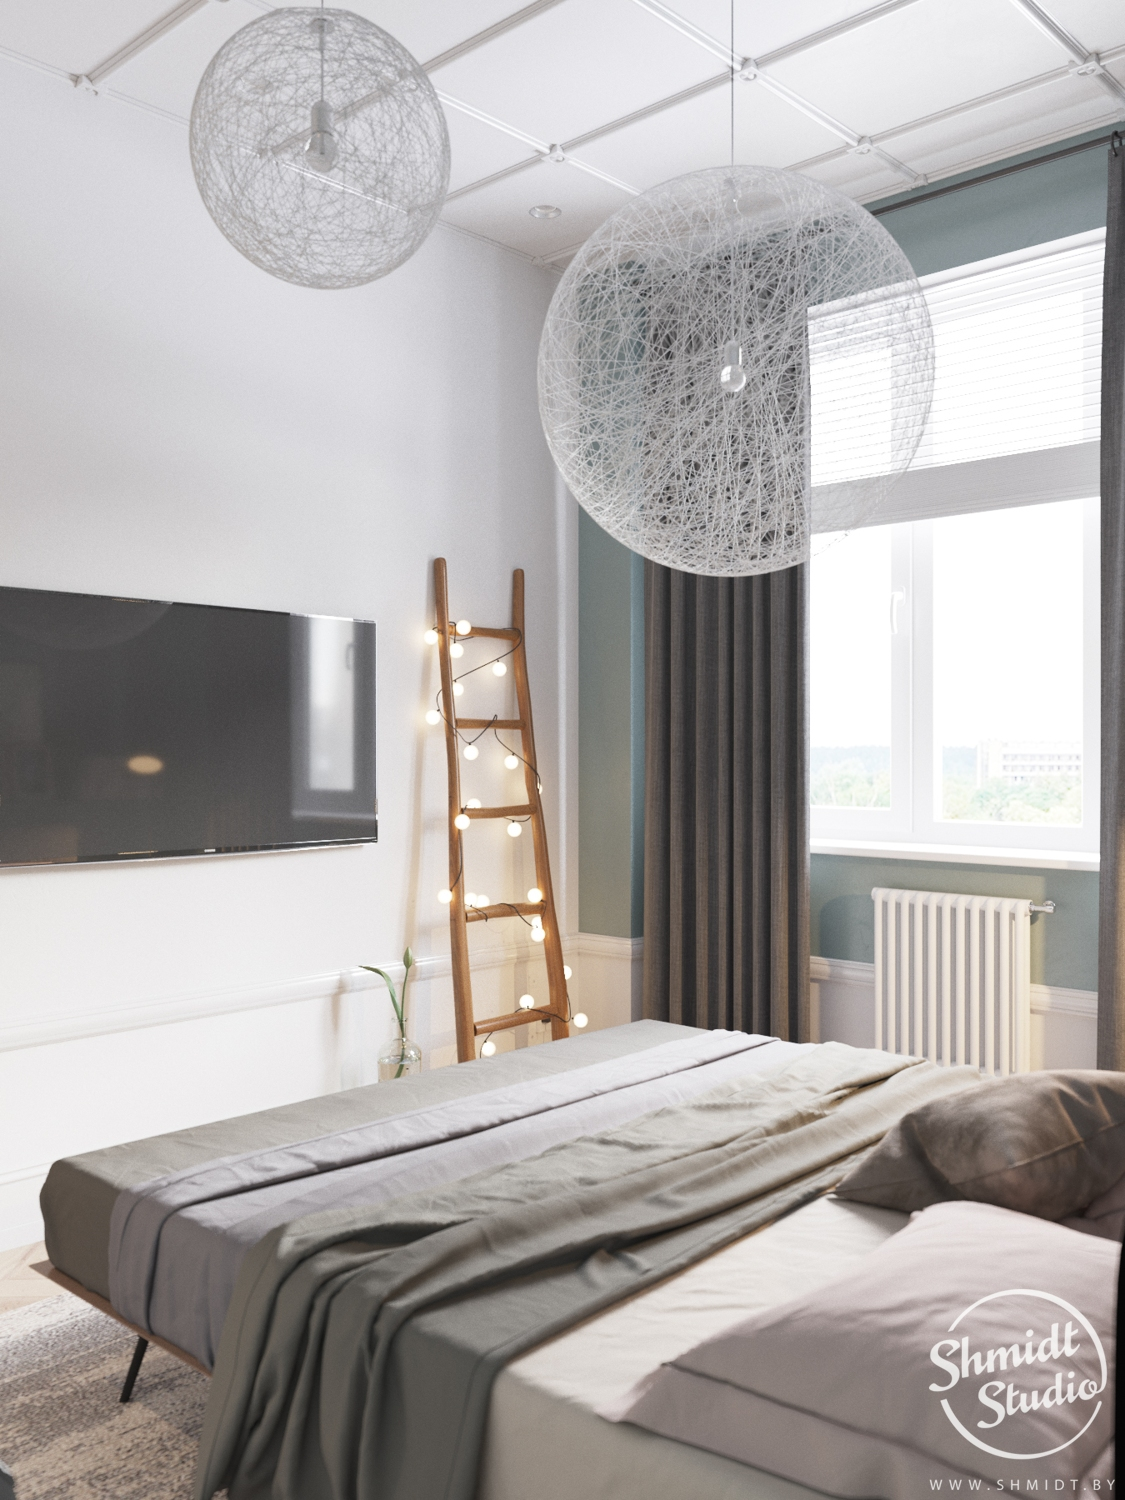 A Scandinavian Chic Style 3 Bedroom Apartment For A Young Family images 22